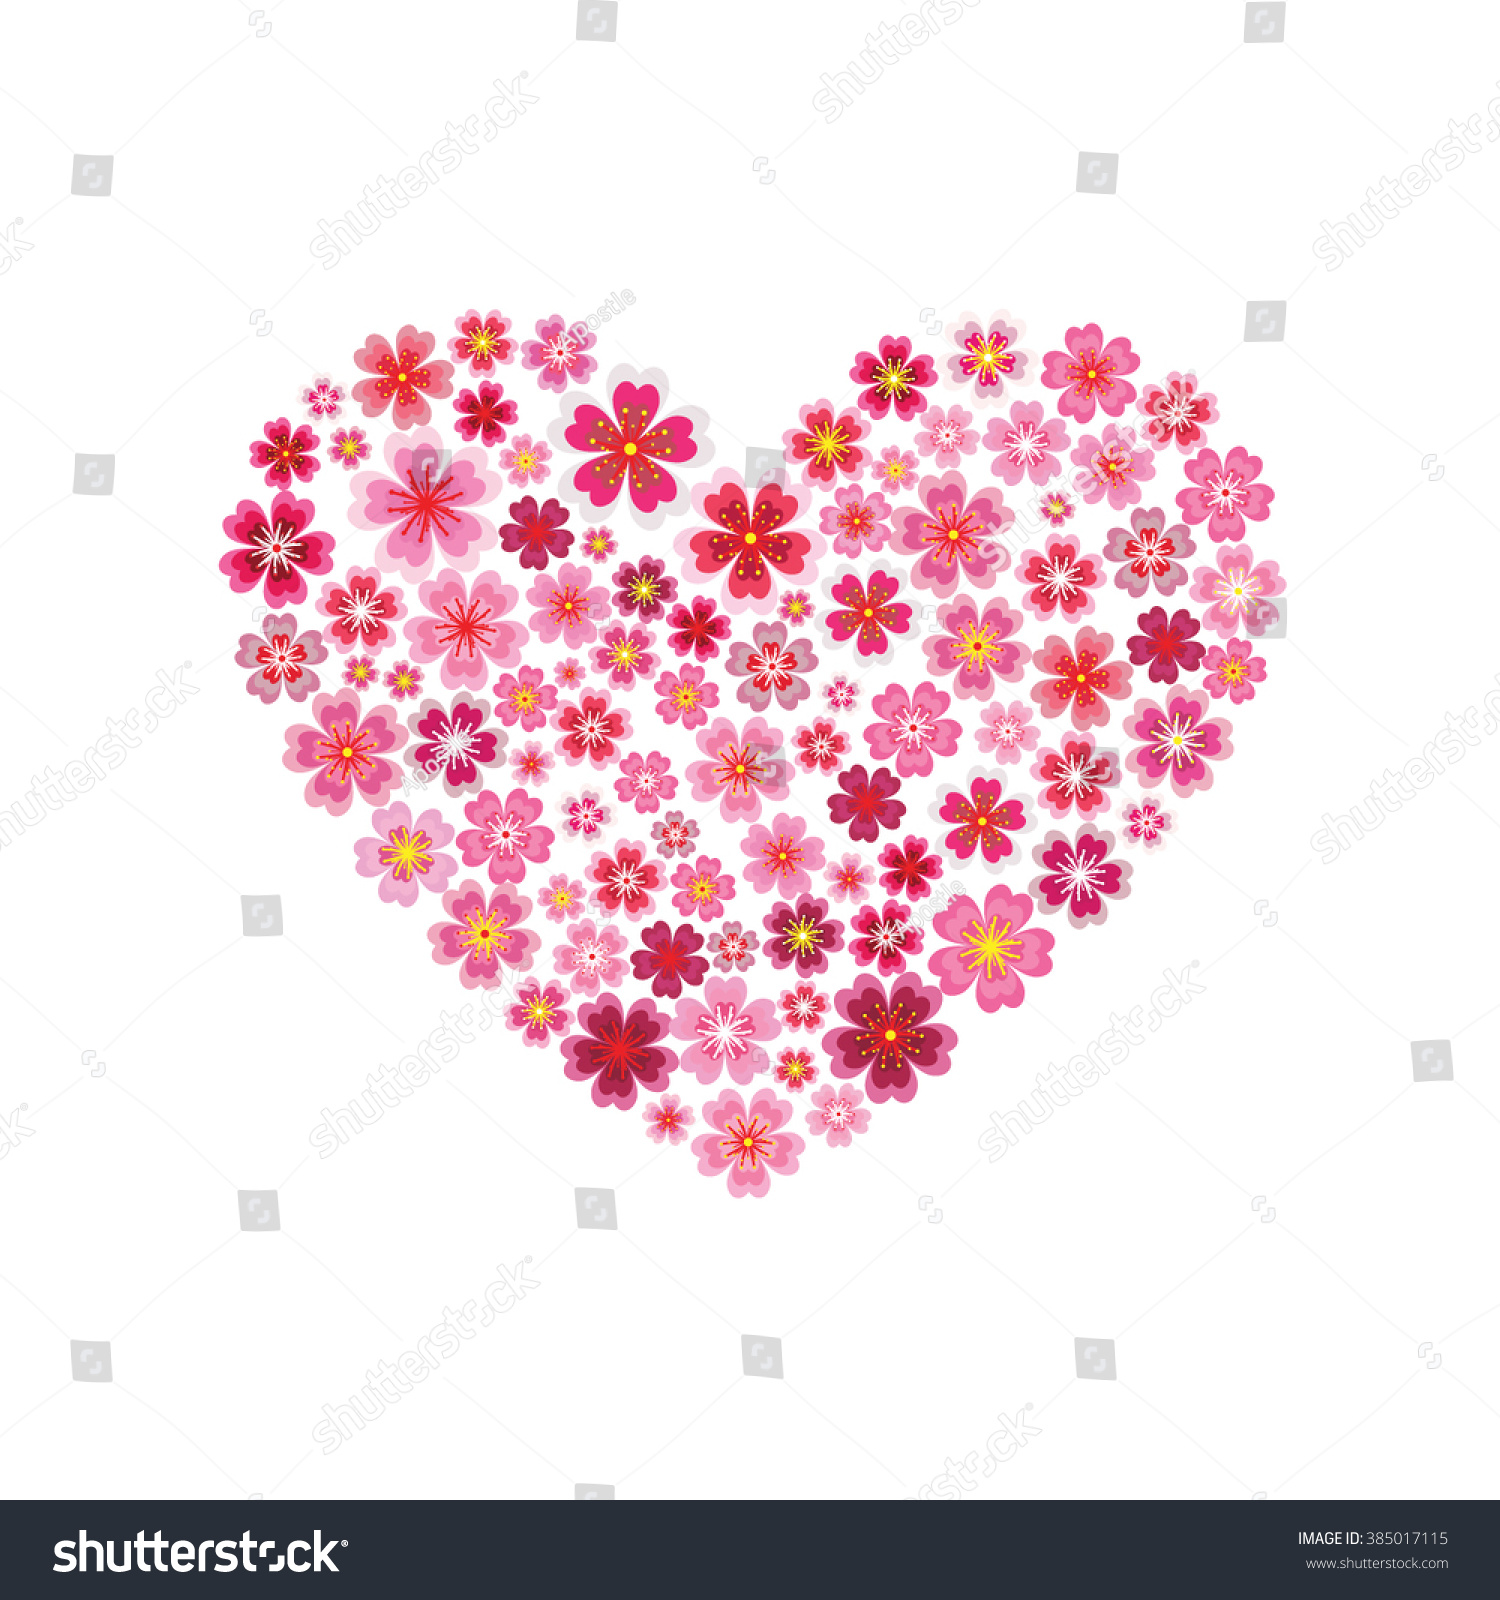 Flower heart Vector JPEG